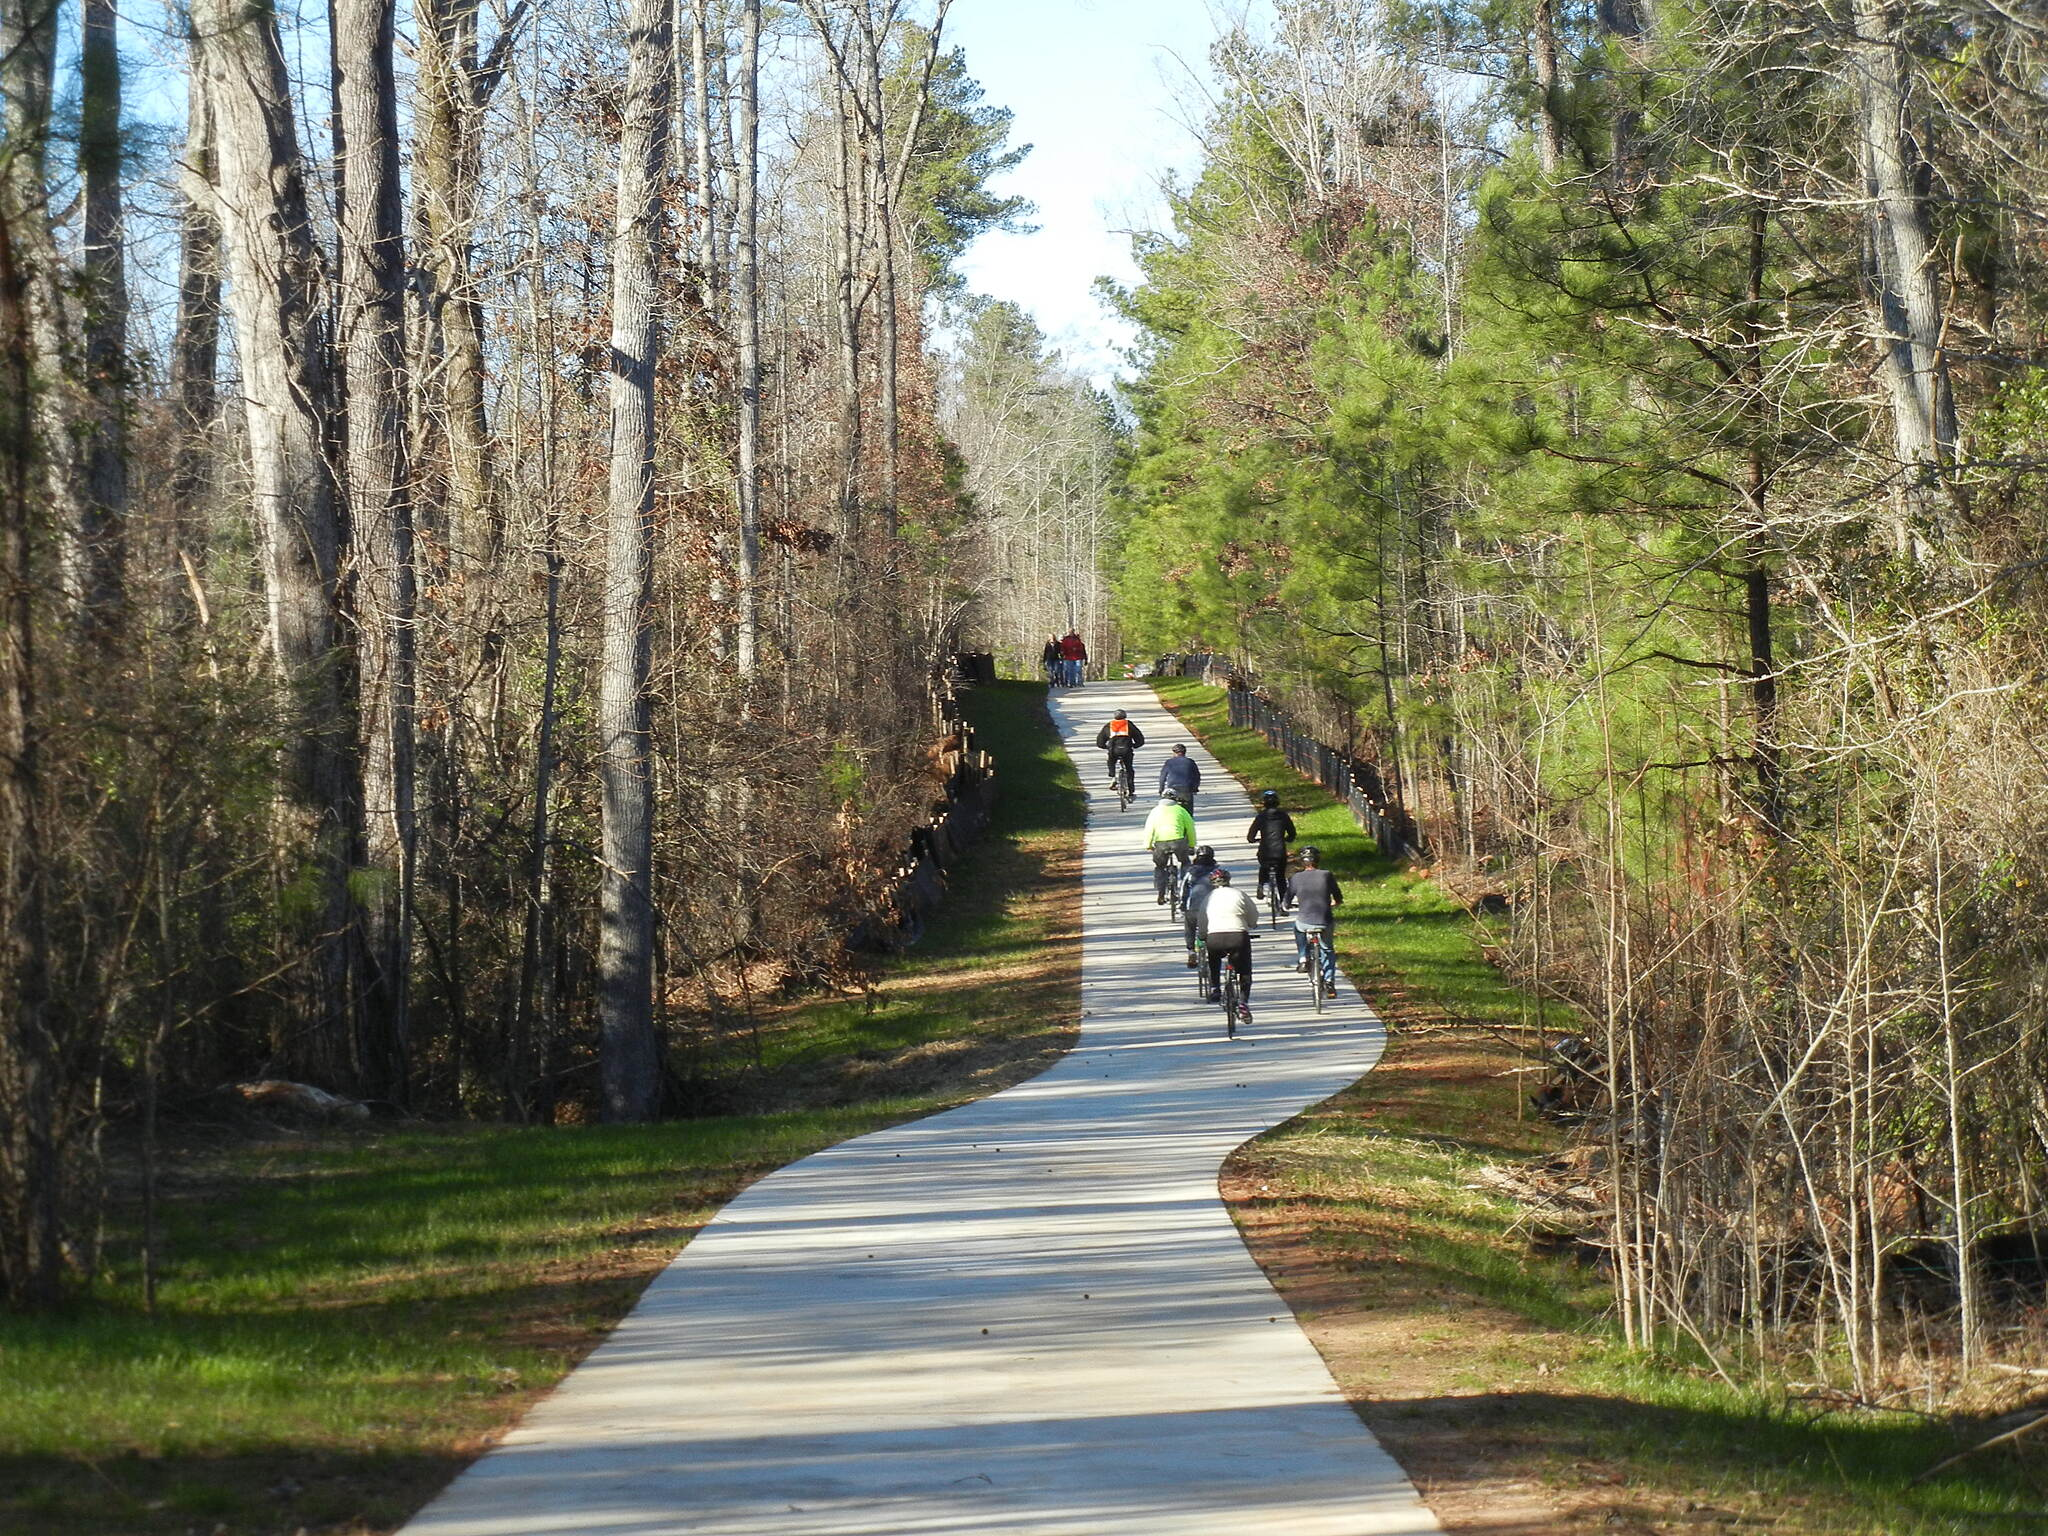 Eastside Trail (Covington) Rolling through the woodlands Leaving downtown Covington, walkers, joggers, and cyclists pass safely through a tunnel that avoids car traffic above and places them in another world -- with gentle rolling terrain through woodlands, wetlands, and hay fields.